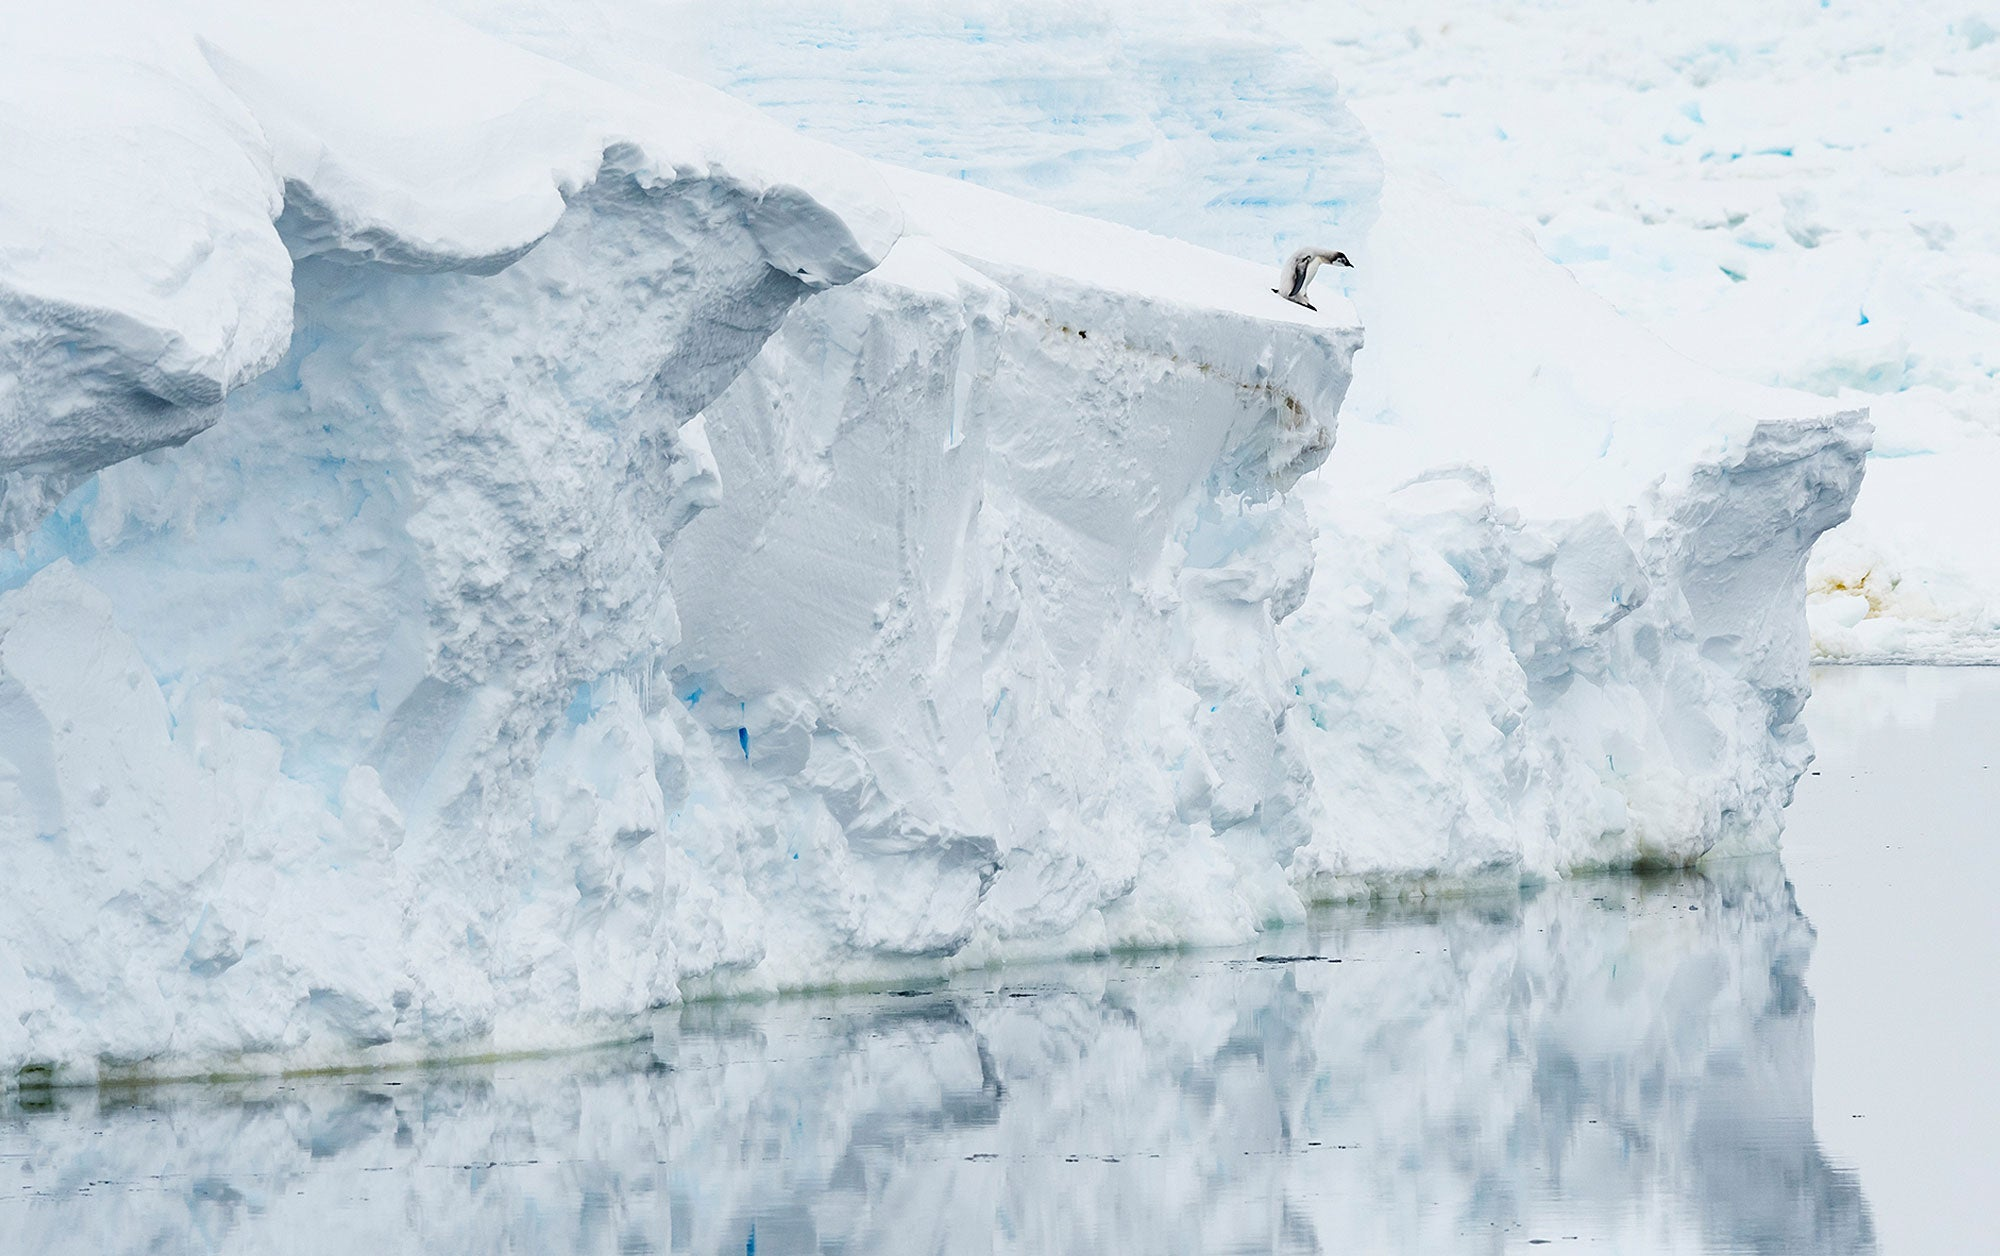 An emperor penguin chick stands on the edge of the ice-shelf, starring at the open water below